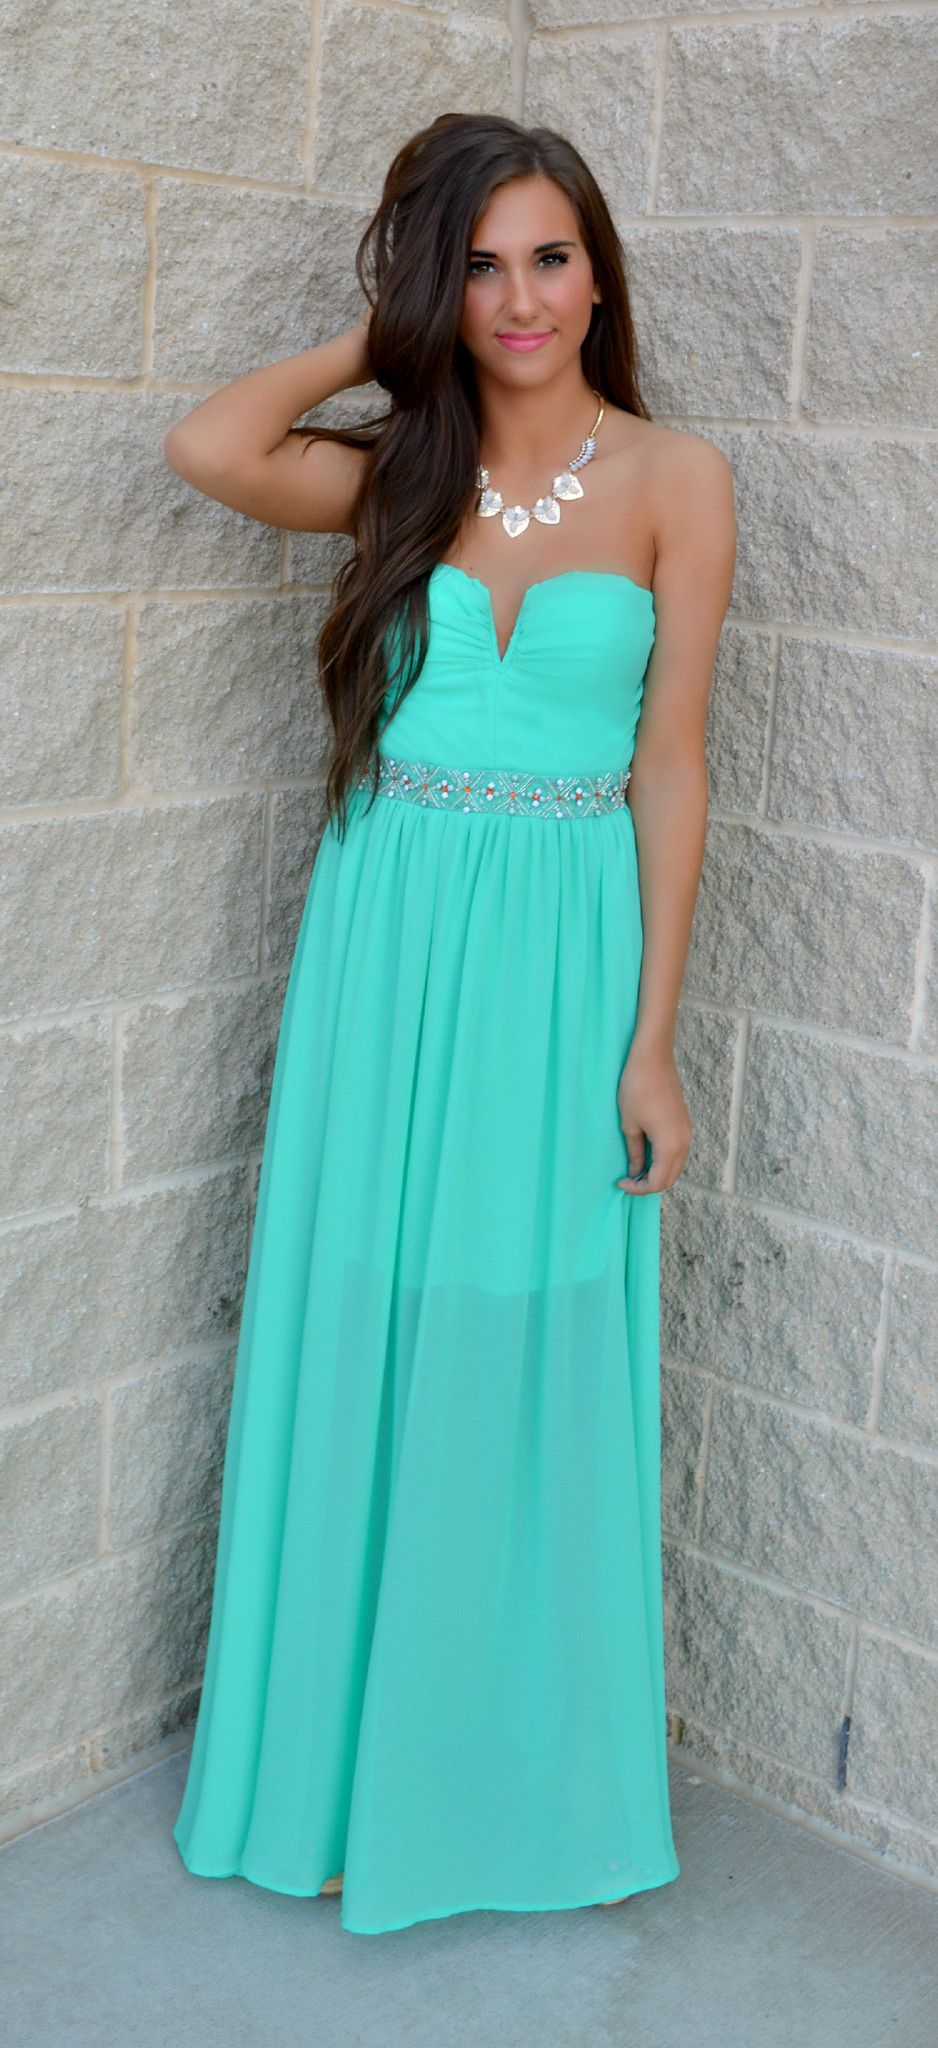 Teal The Tides Turn Maxi Dress from Haute Pink Boutique | HAUTE New ...